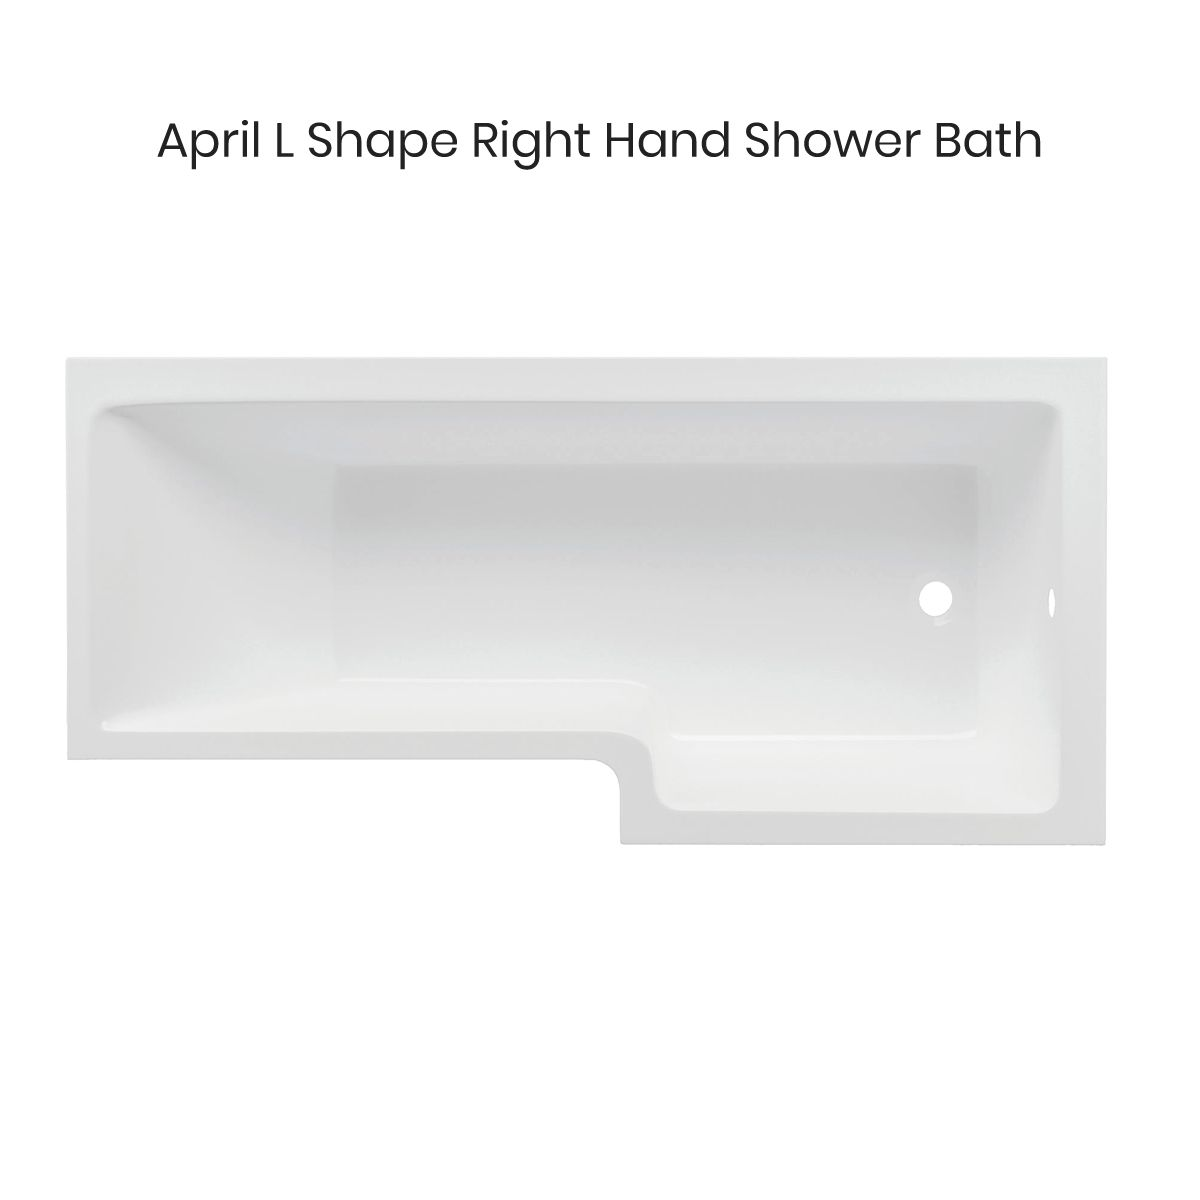 April L Shape Right Hand Shower Bath